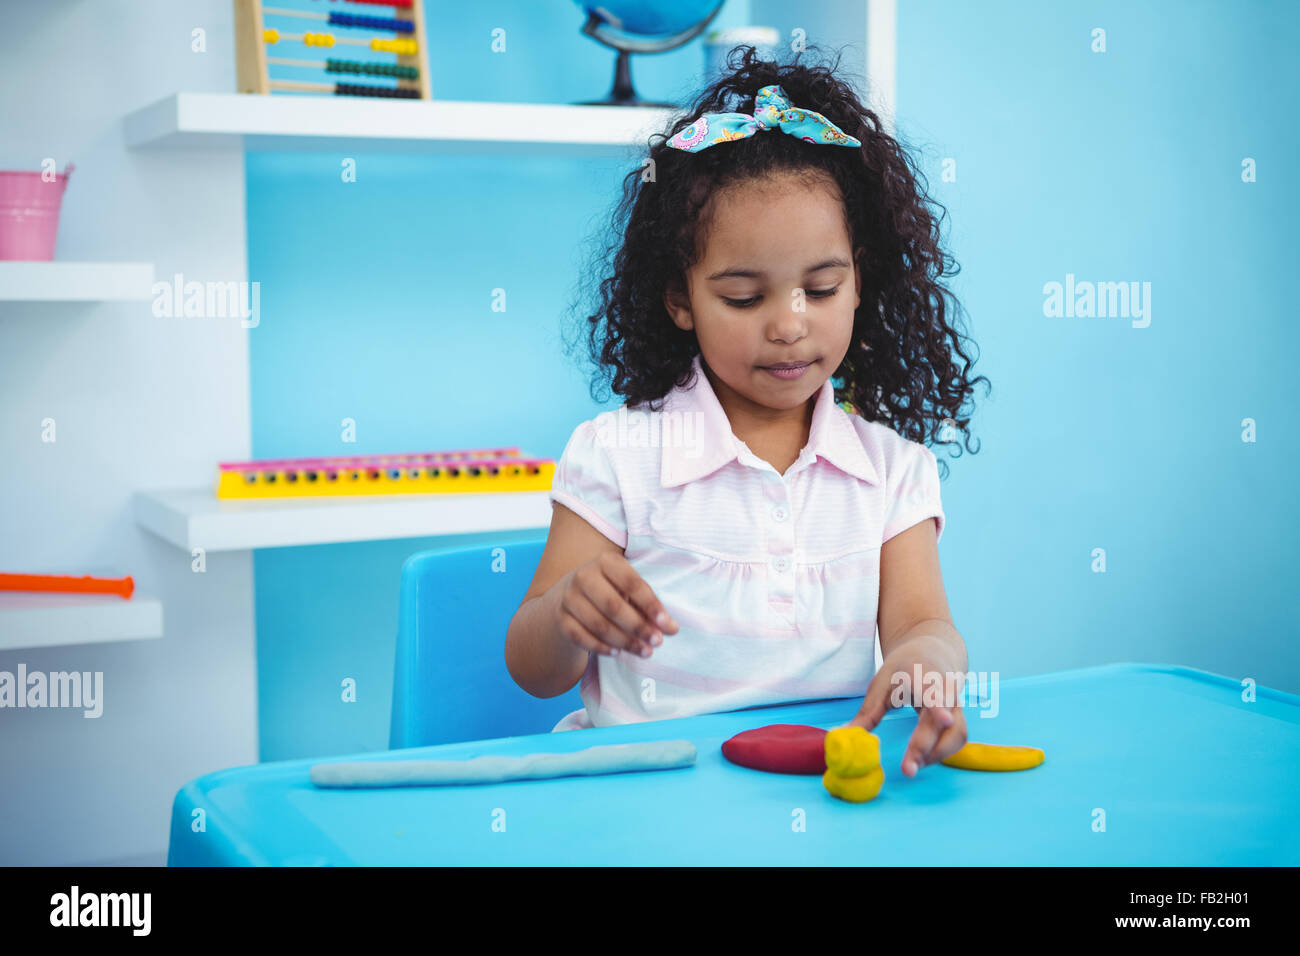 Cute girl using modeling clay - Stock Image